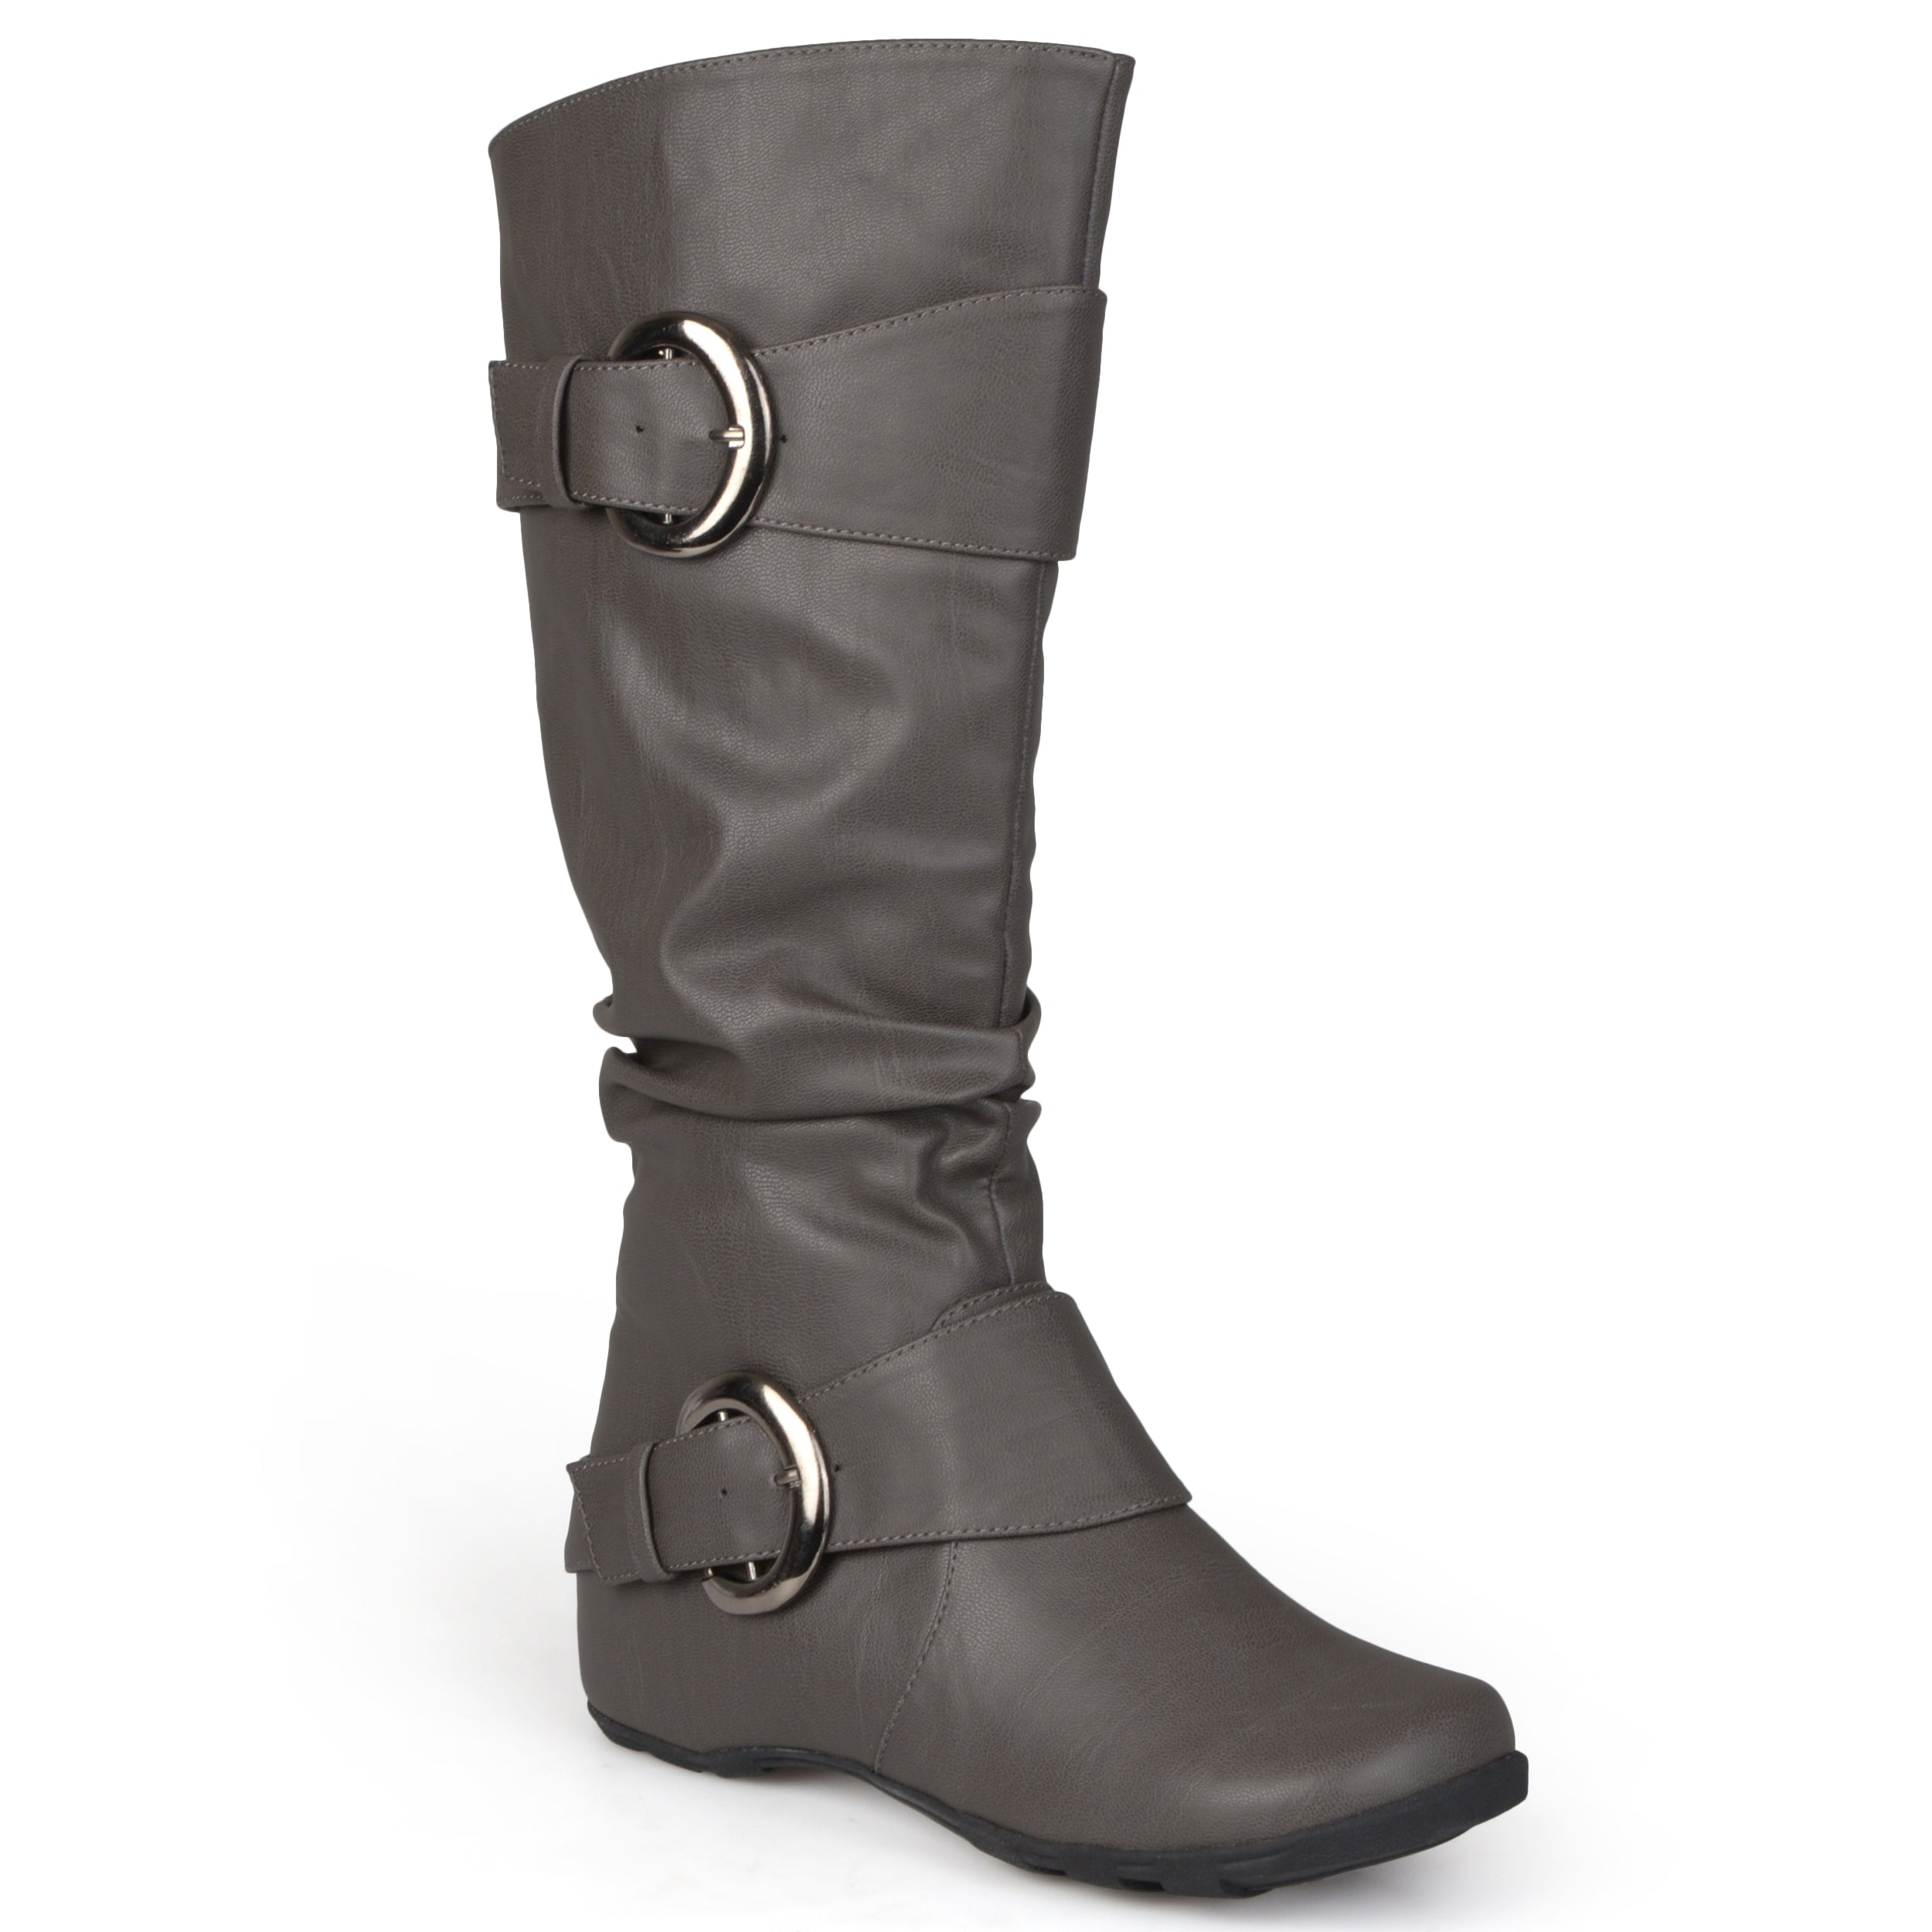 633e34e3cd9 Womens Buckle Knee-High Slouch Boot In Regular and Wide-Calf Sizes